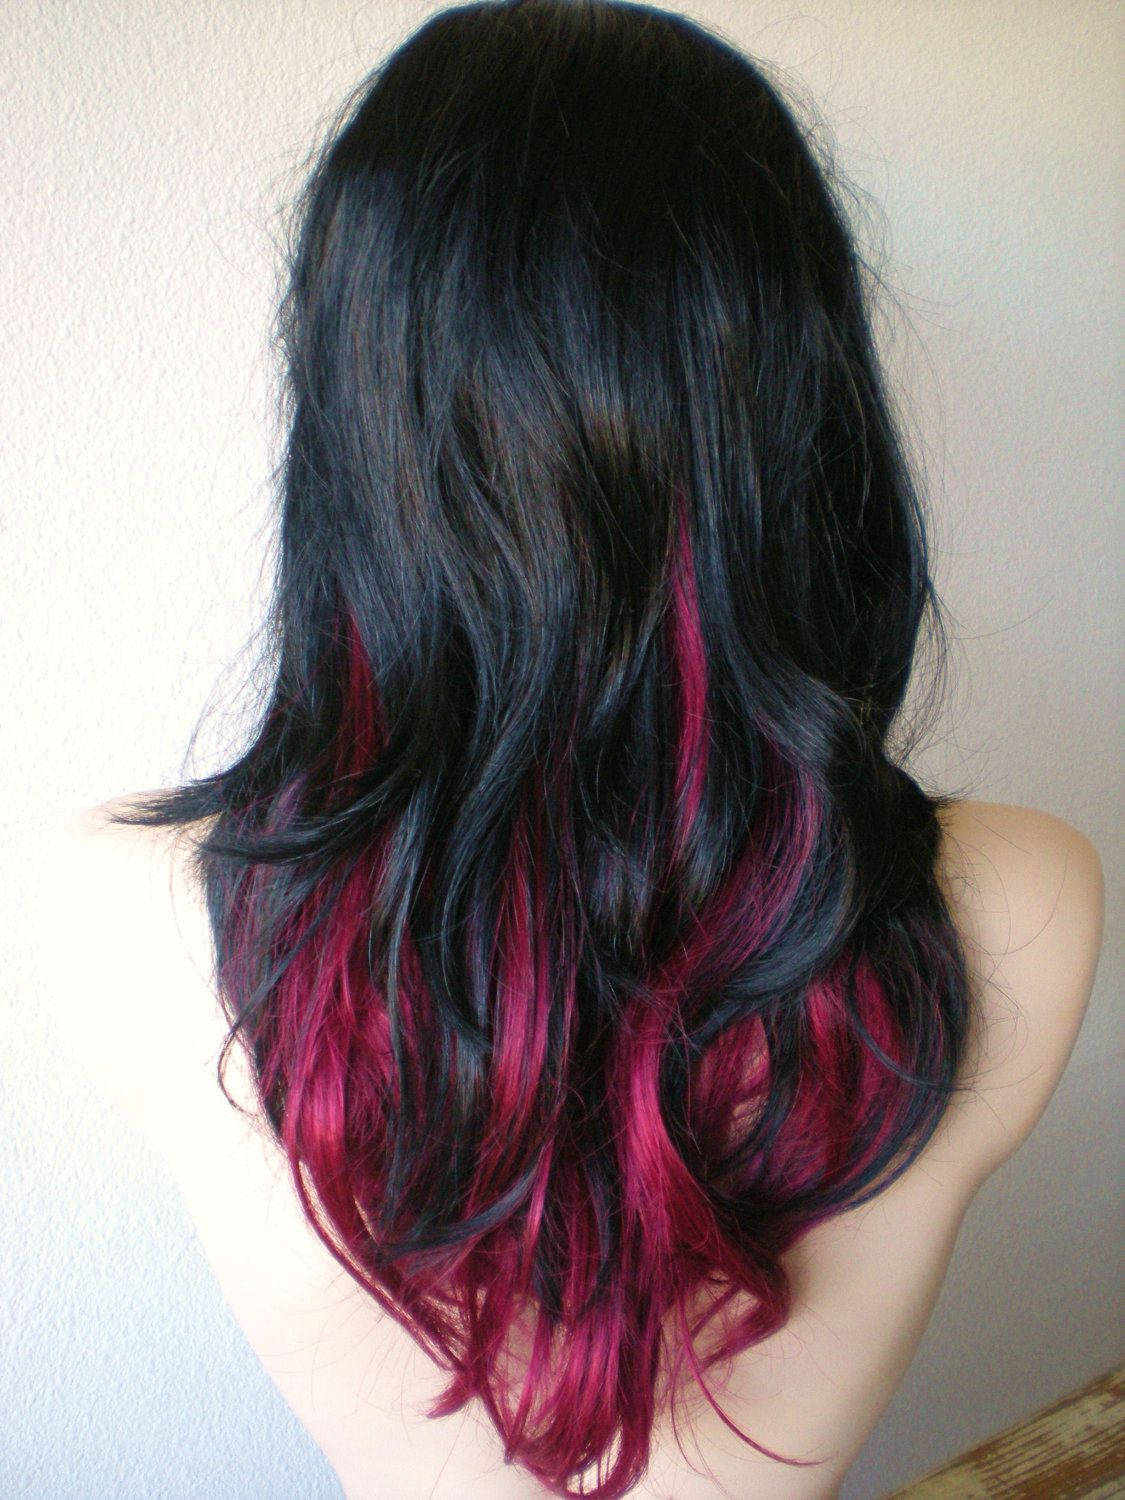 Pin By Megan Goldstein On Stuff I Want Places To Go Etc Pink And Black Hair Peekaboo Hair Red Ombre Hair